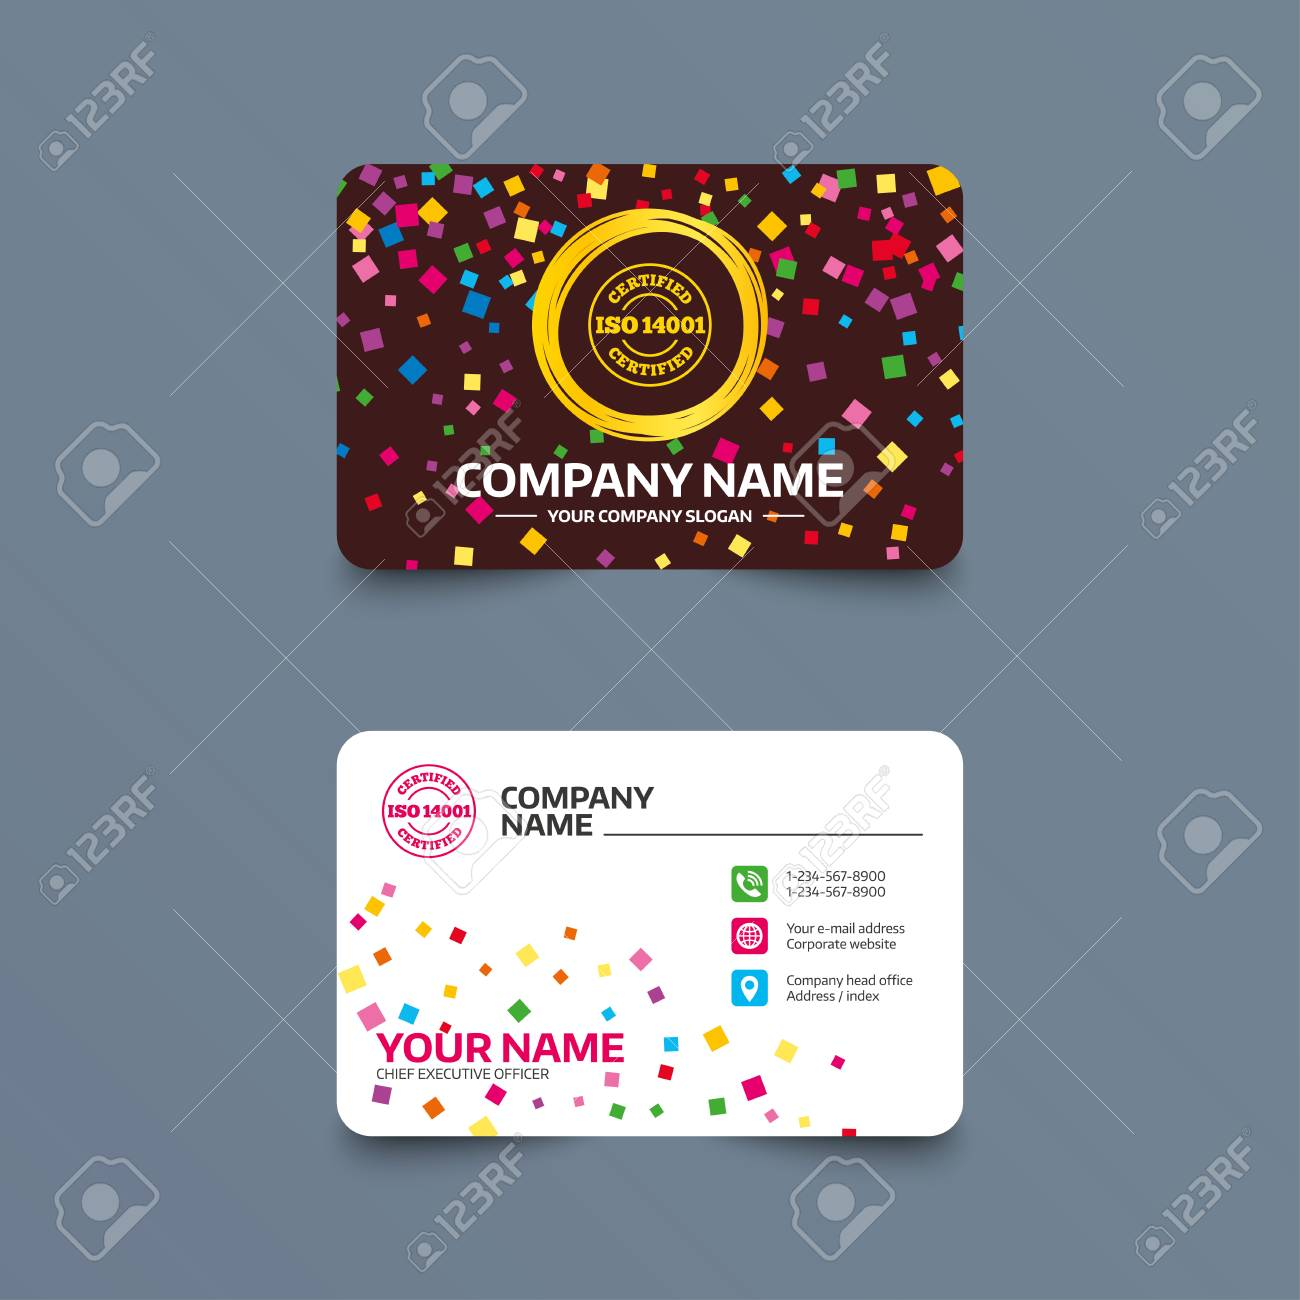 Business Card Template With Confetti Pieces. ISO 14001 Certified ...